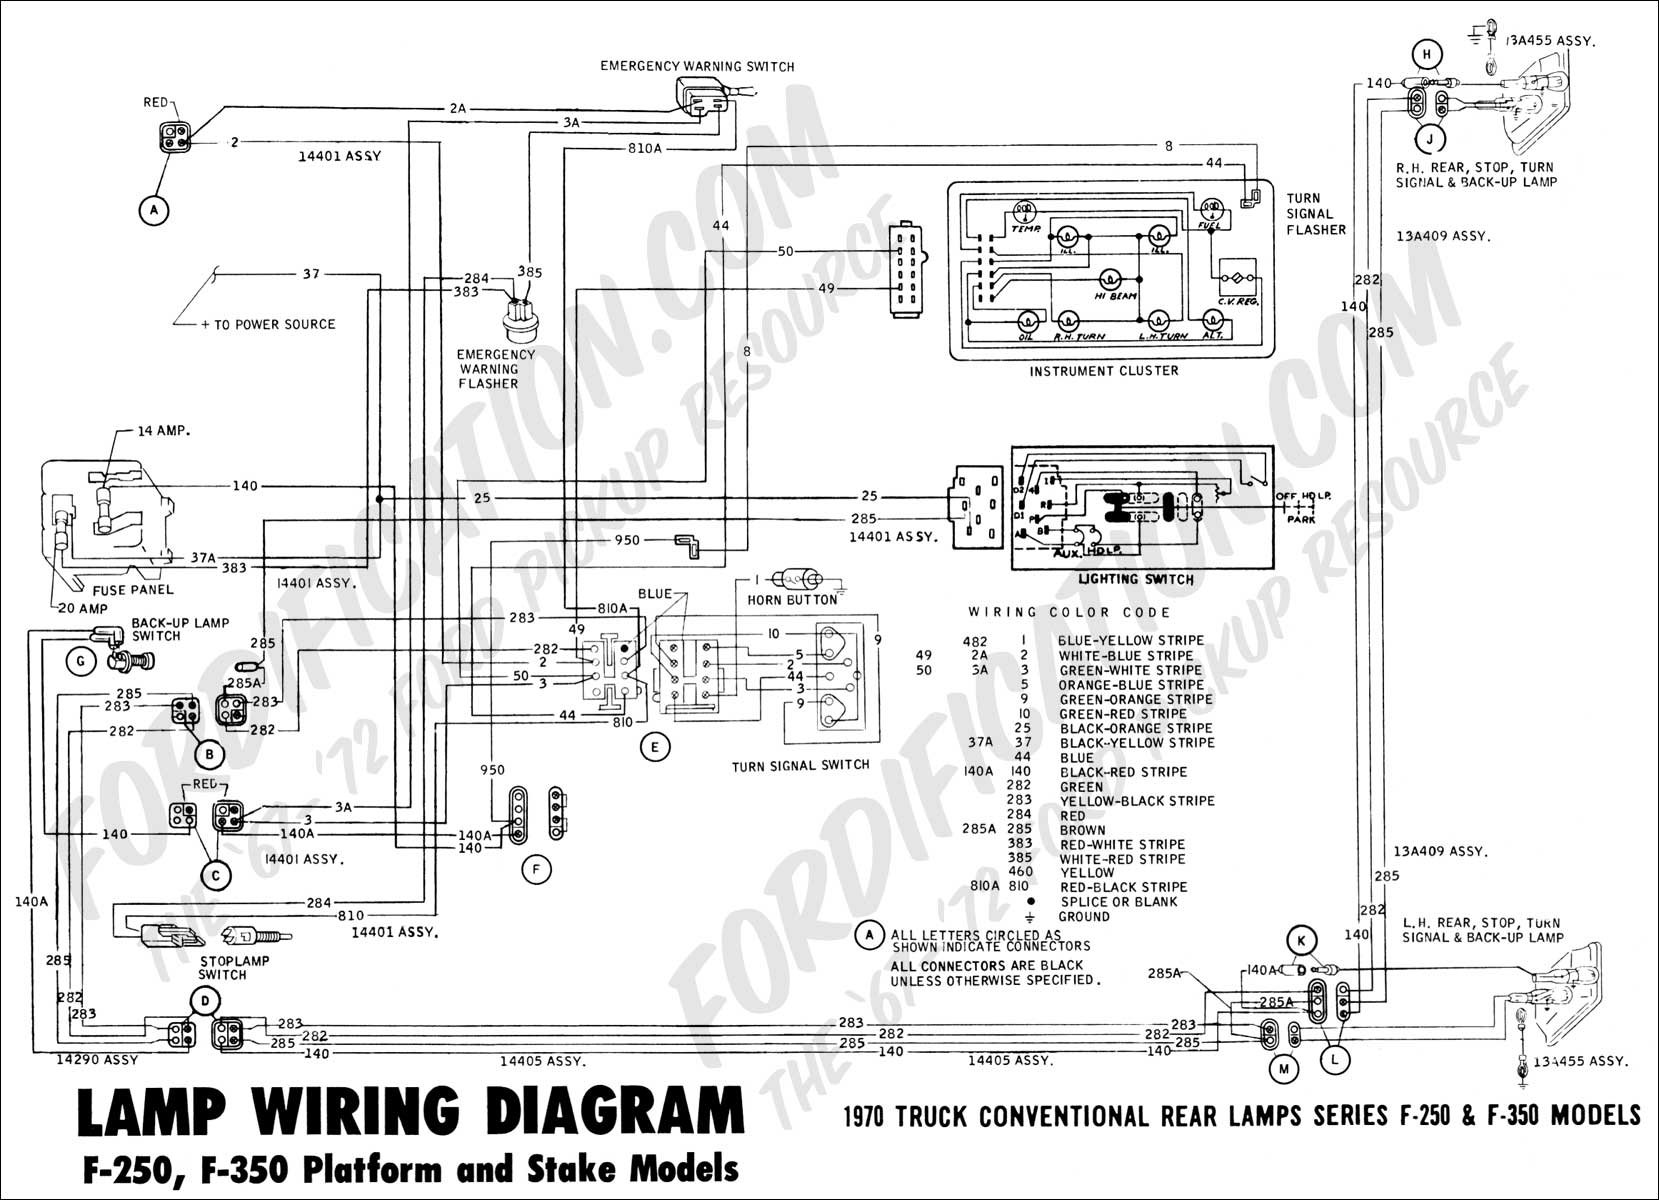 1997 ford f 150 ignition switch wiring diagram wiring library rh 36 informaticaonlinetraining co